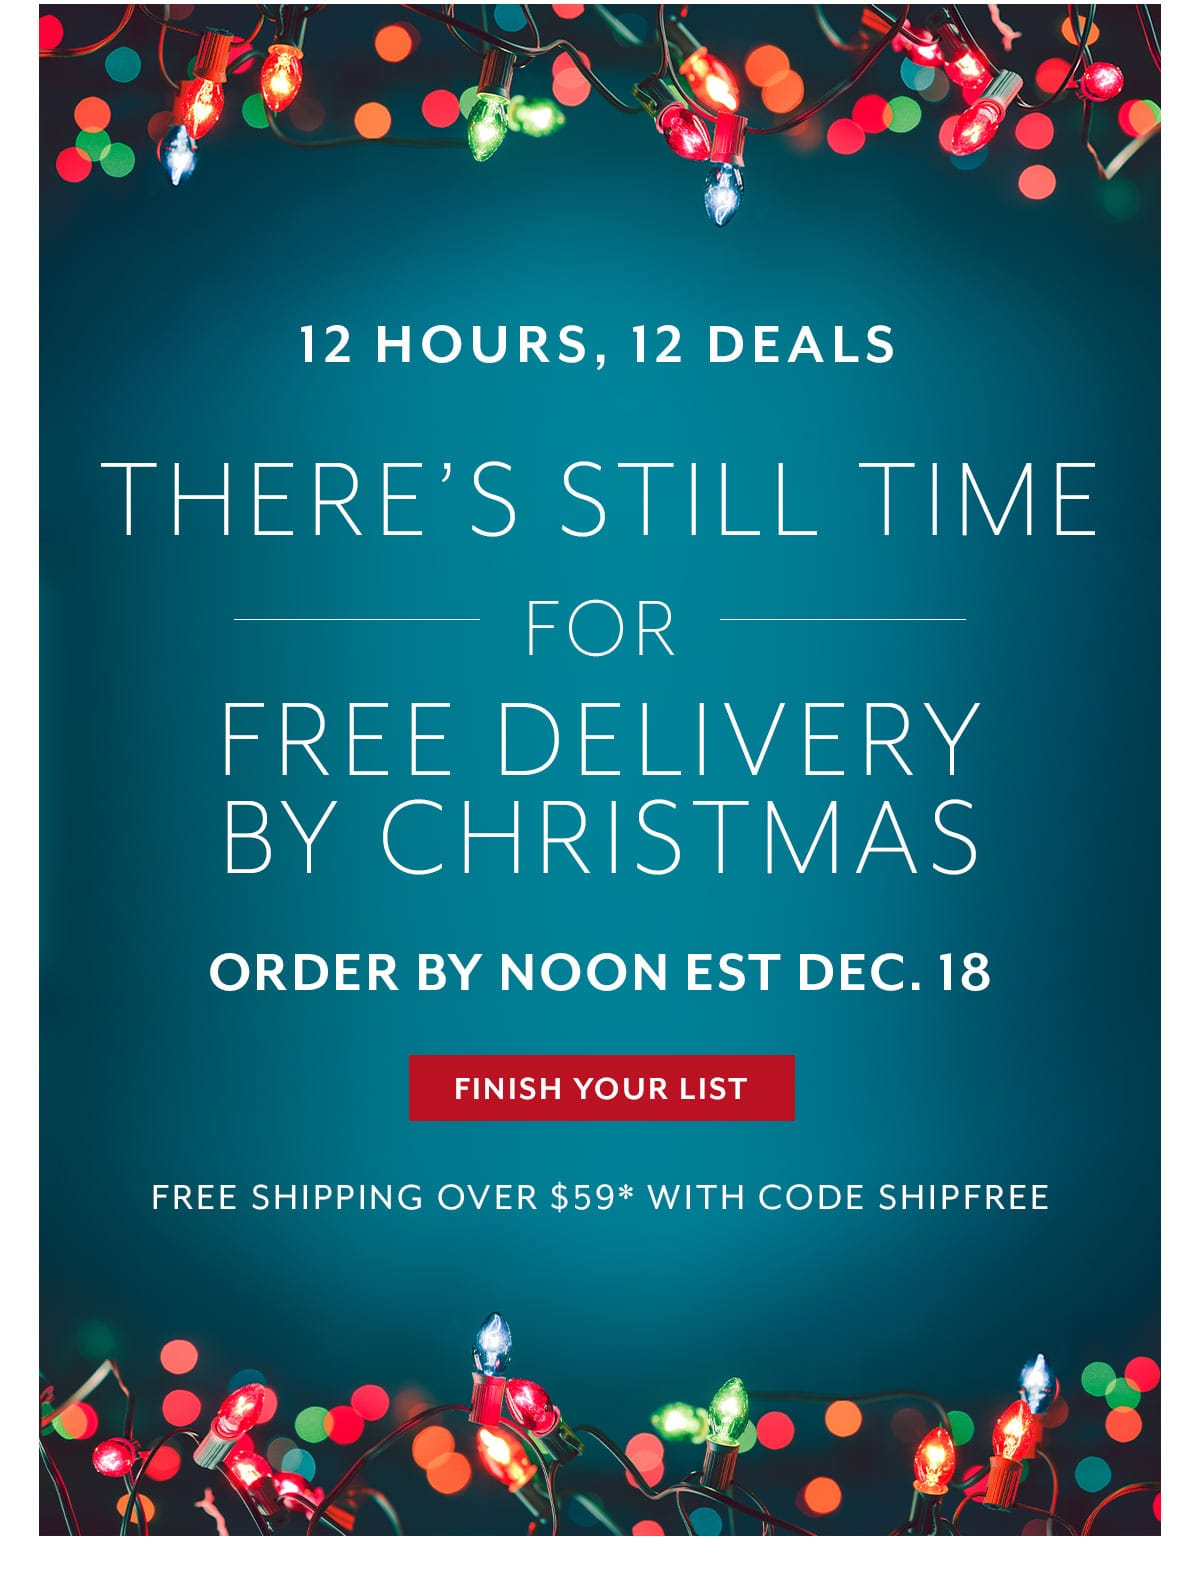 12 Hours, 12 Deals - There's still time for free delivery by Christmas